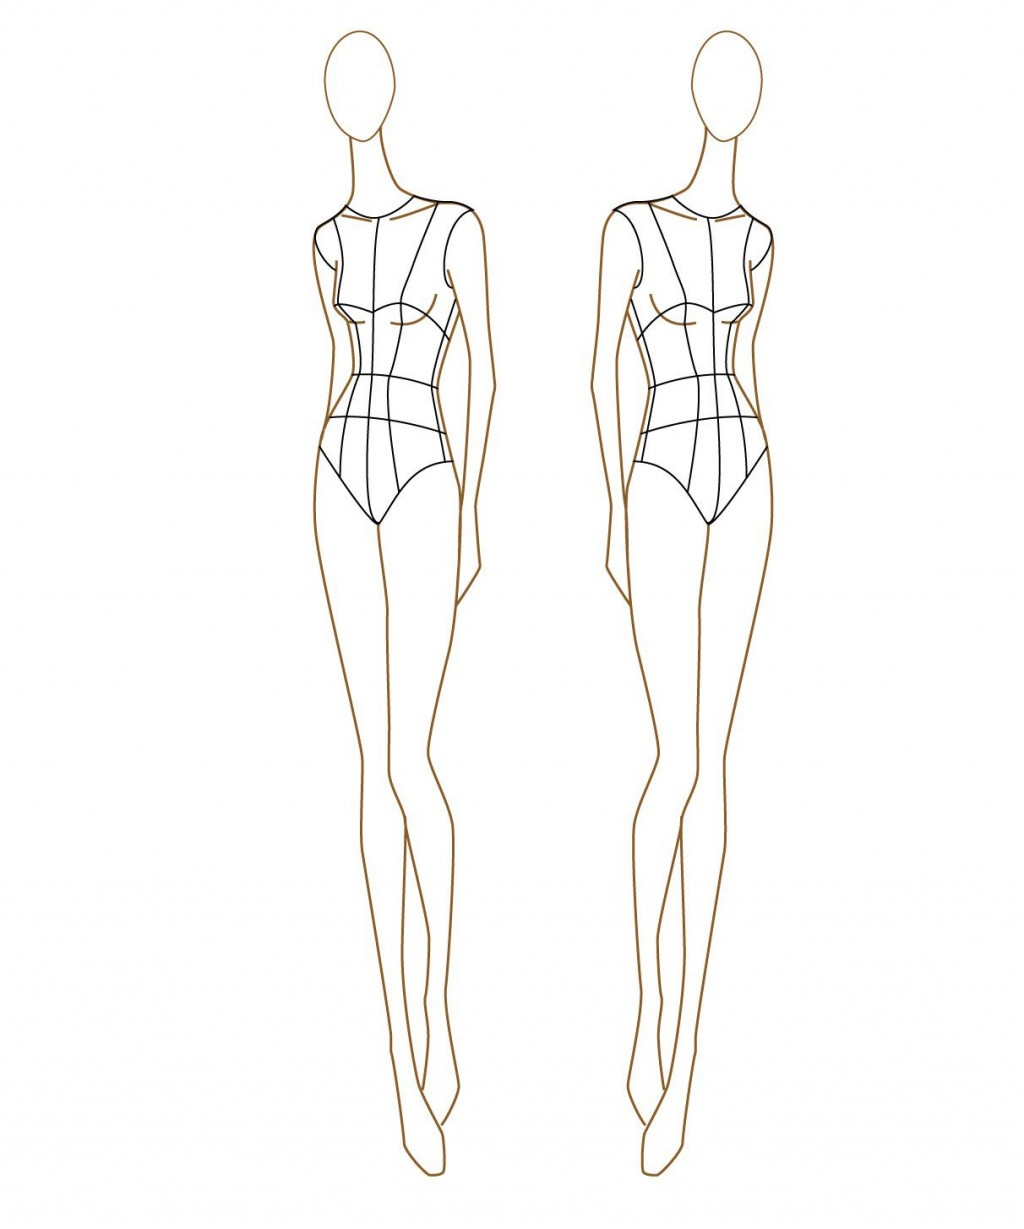 009 Striking Body Template For Fashion Design Example  Female Male HumanLarge